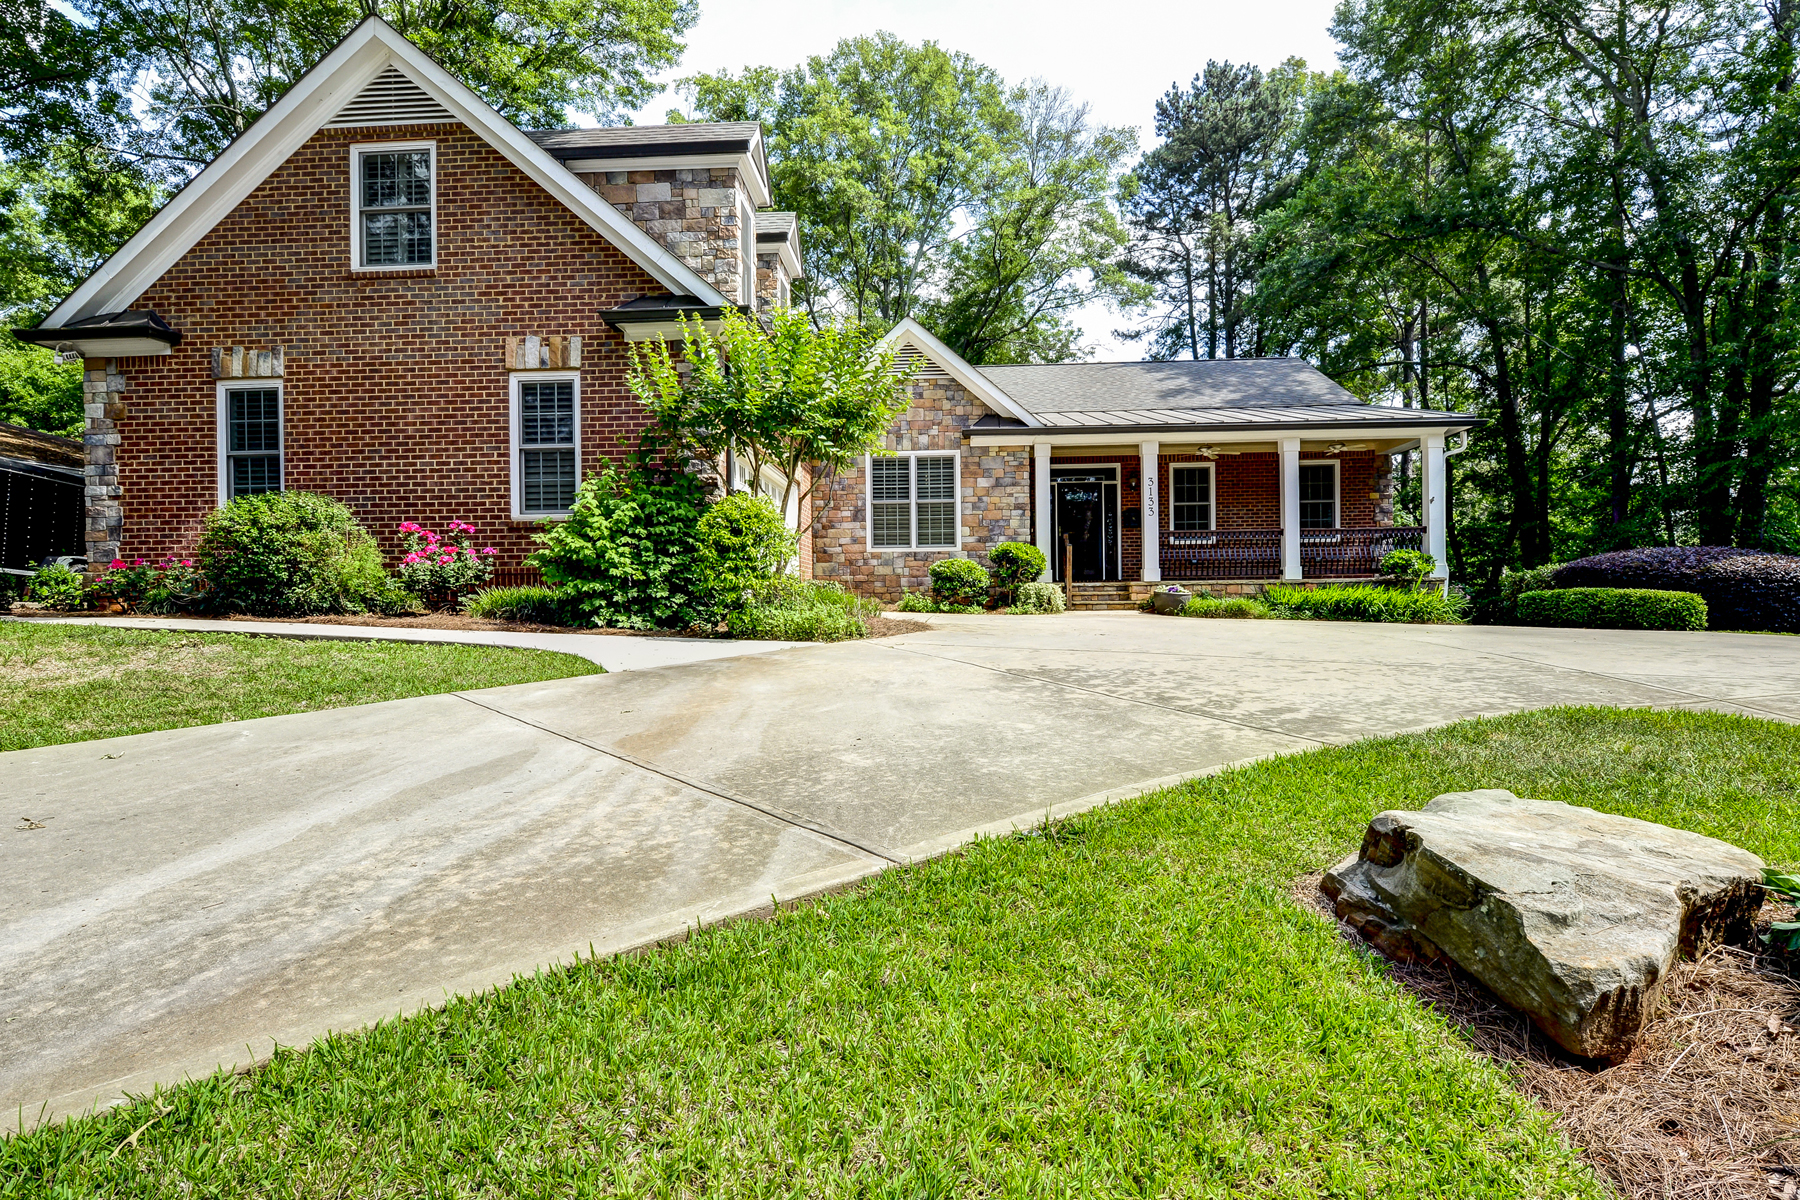 Property For Sale at Wonderful Newer Construction Steps From Picturesque Lake